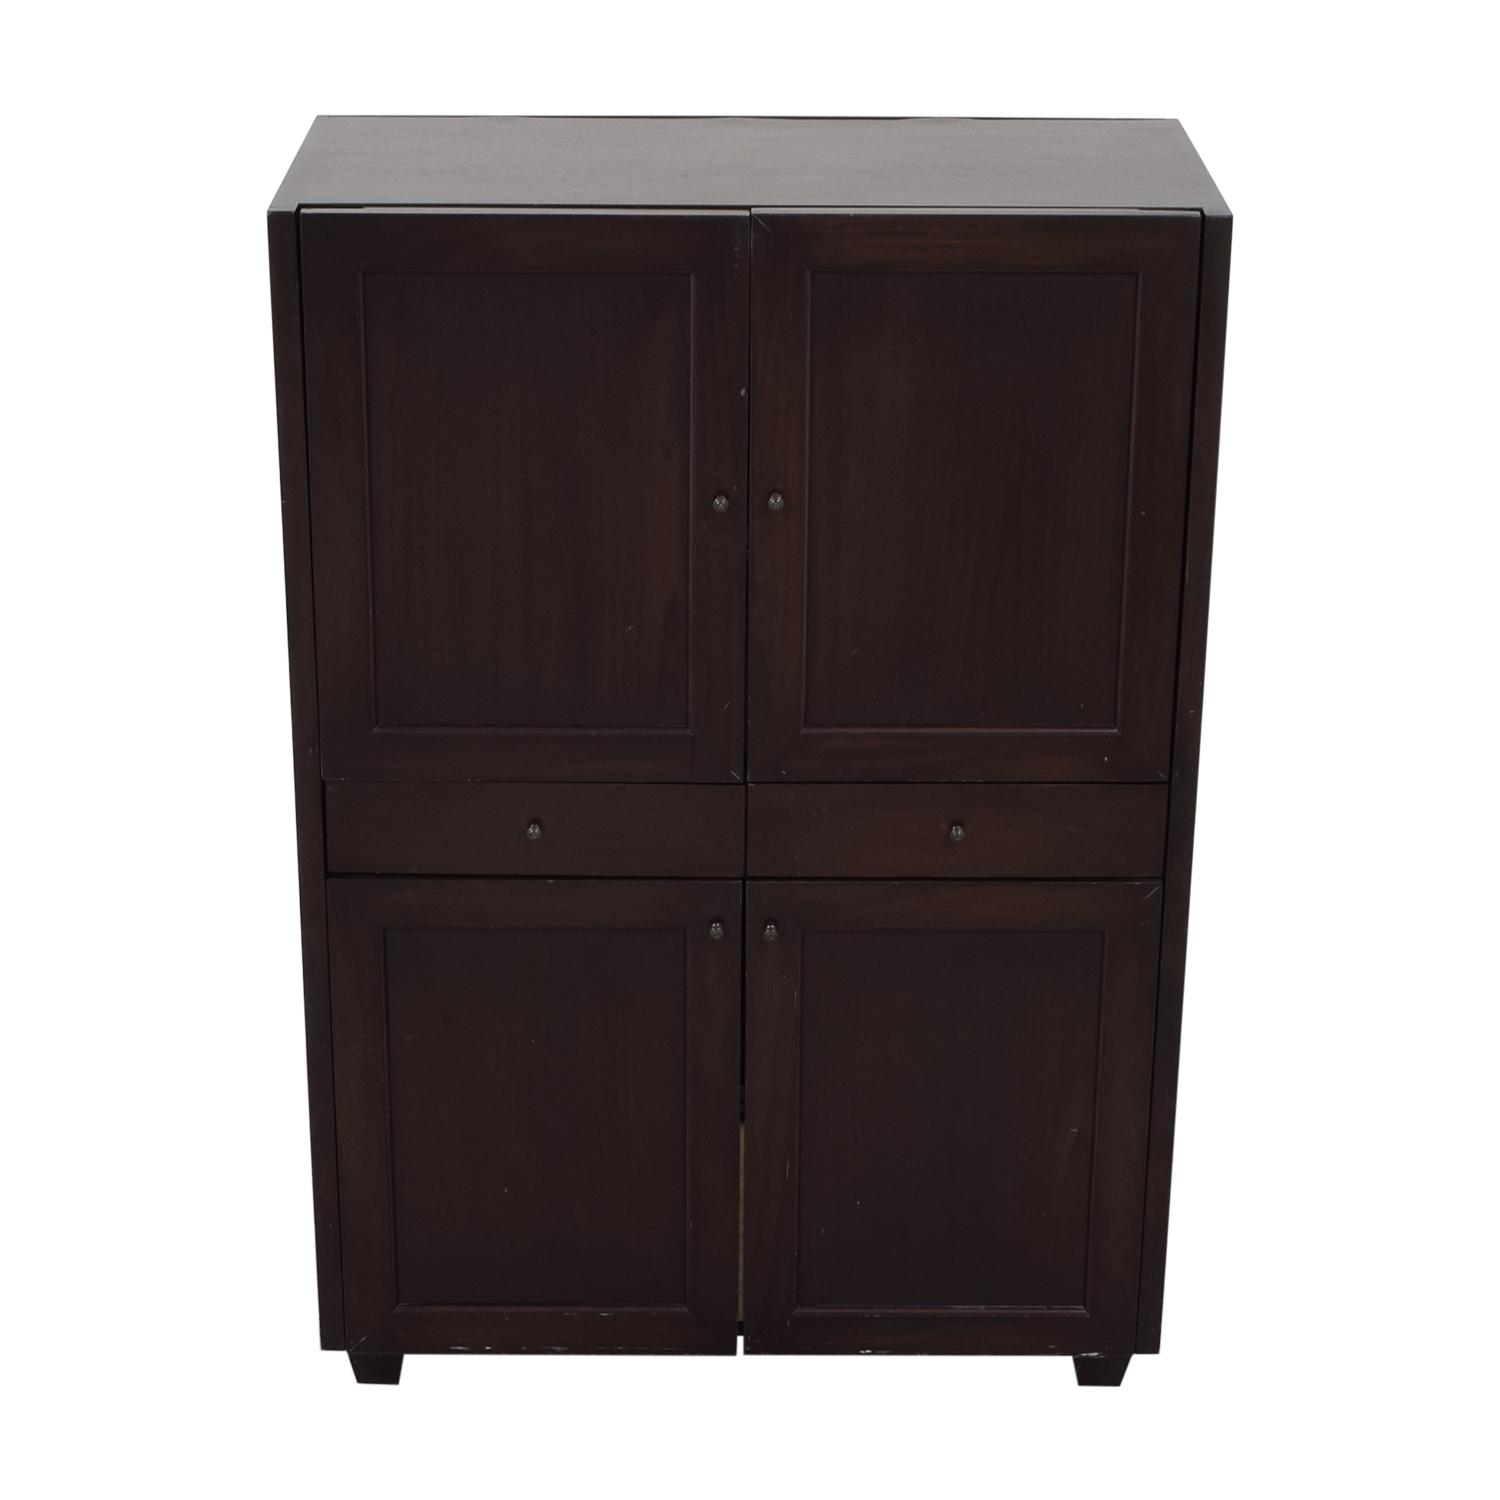 Stationary Cabinet with Drawers price